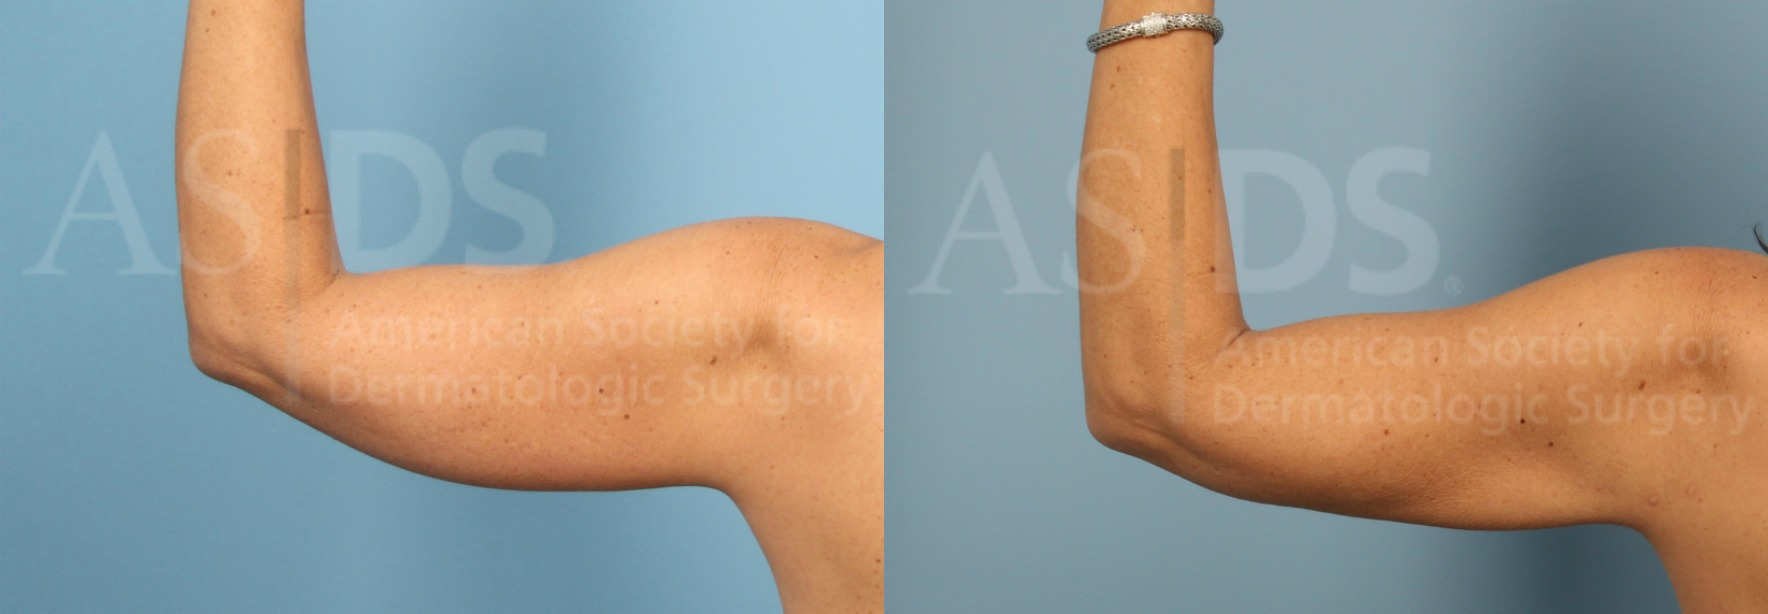 Before (left) and after (right) - 1 year after liposuction to left arm.